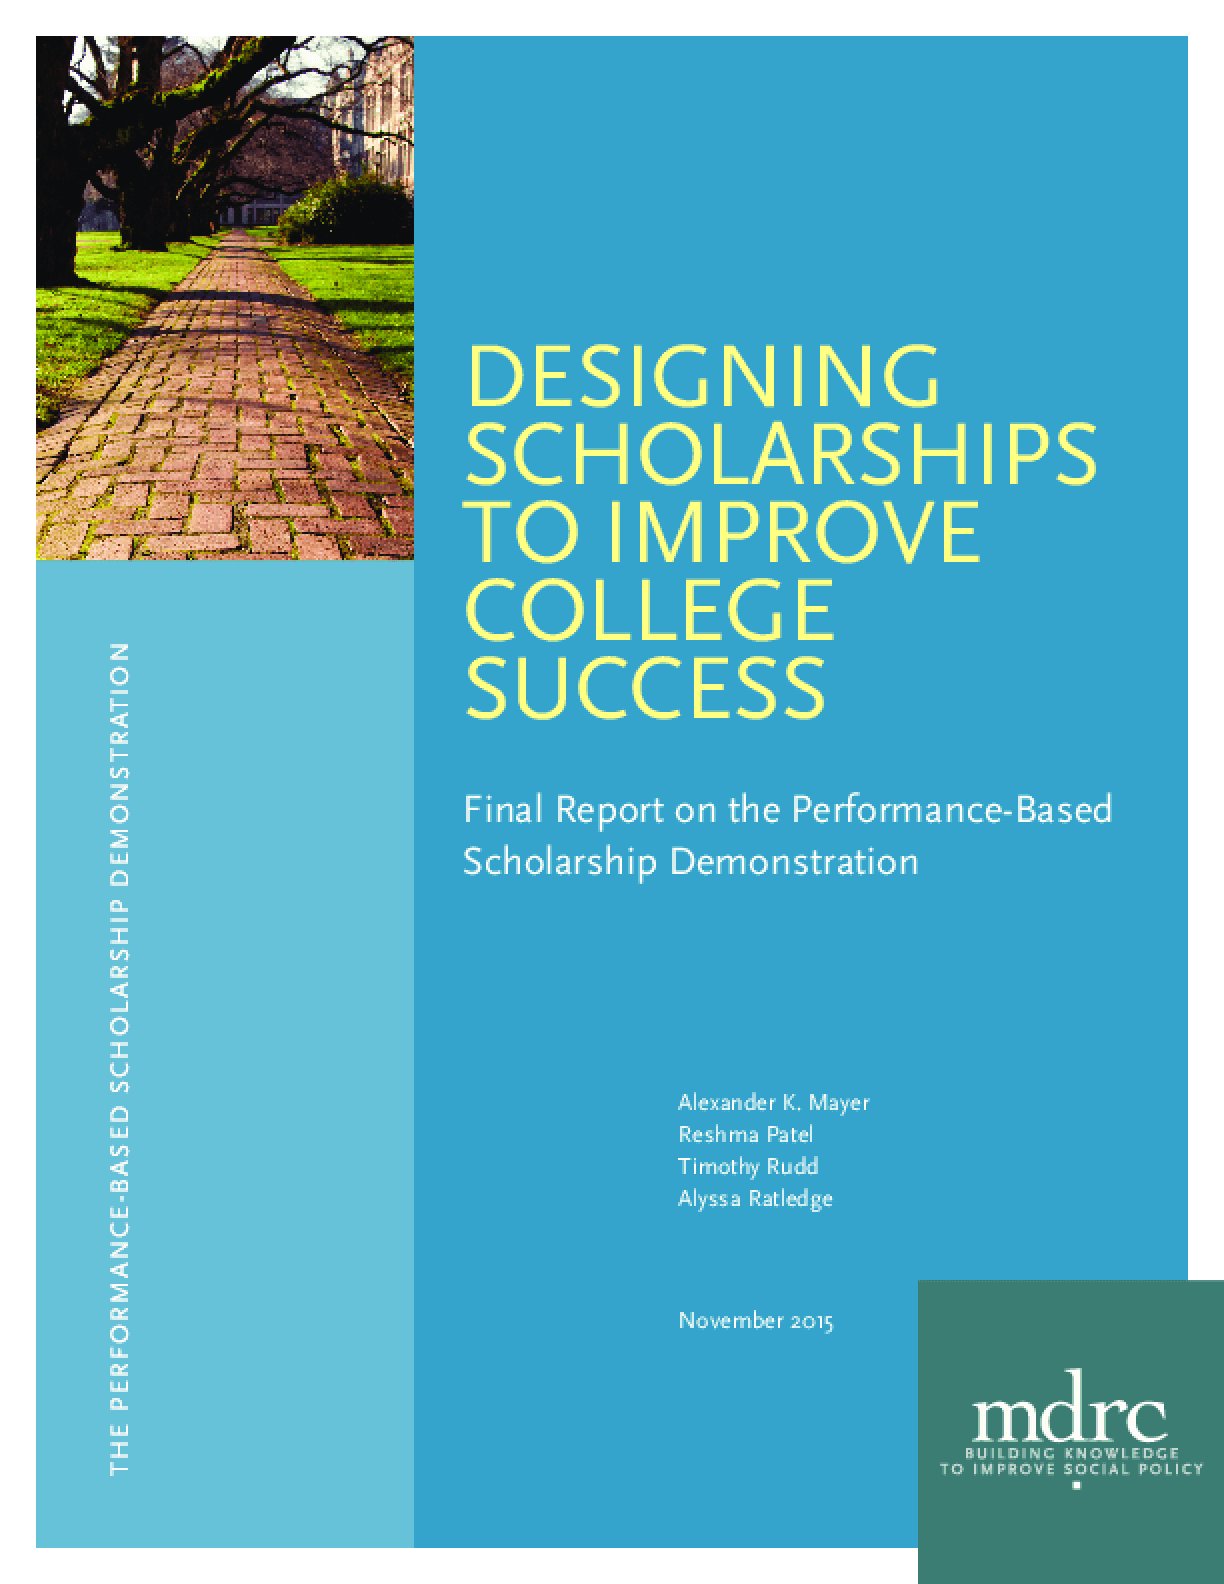 Designing Scholarships To Improve College Success: Final Report On the Performance-Based Scholarship Demonstration